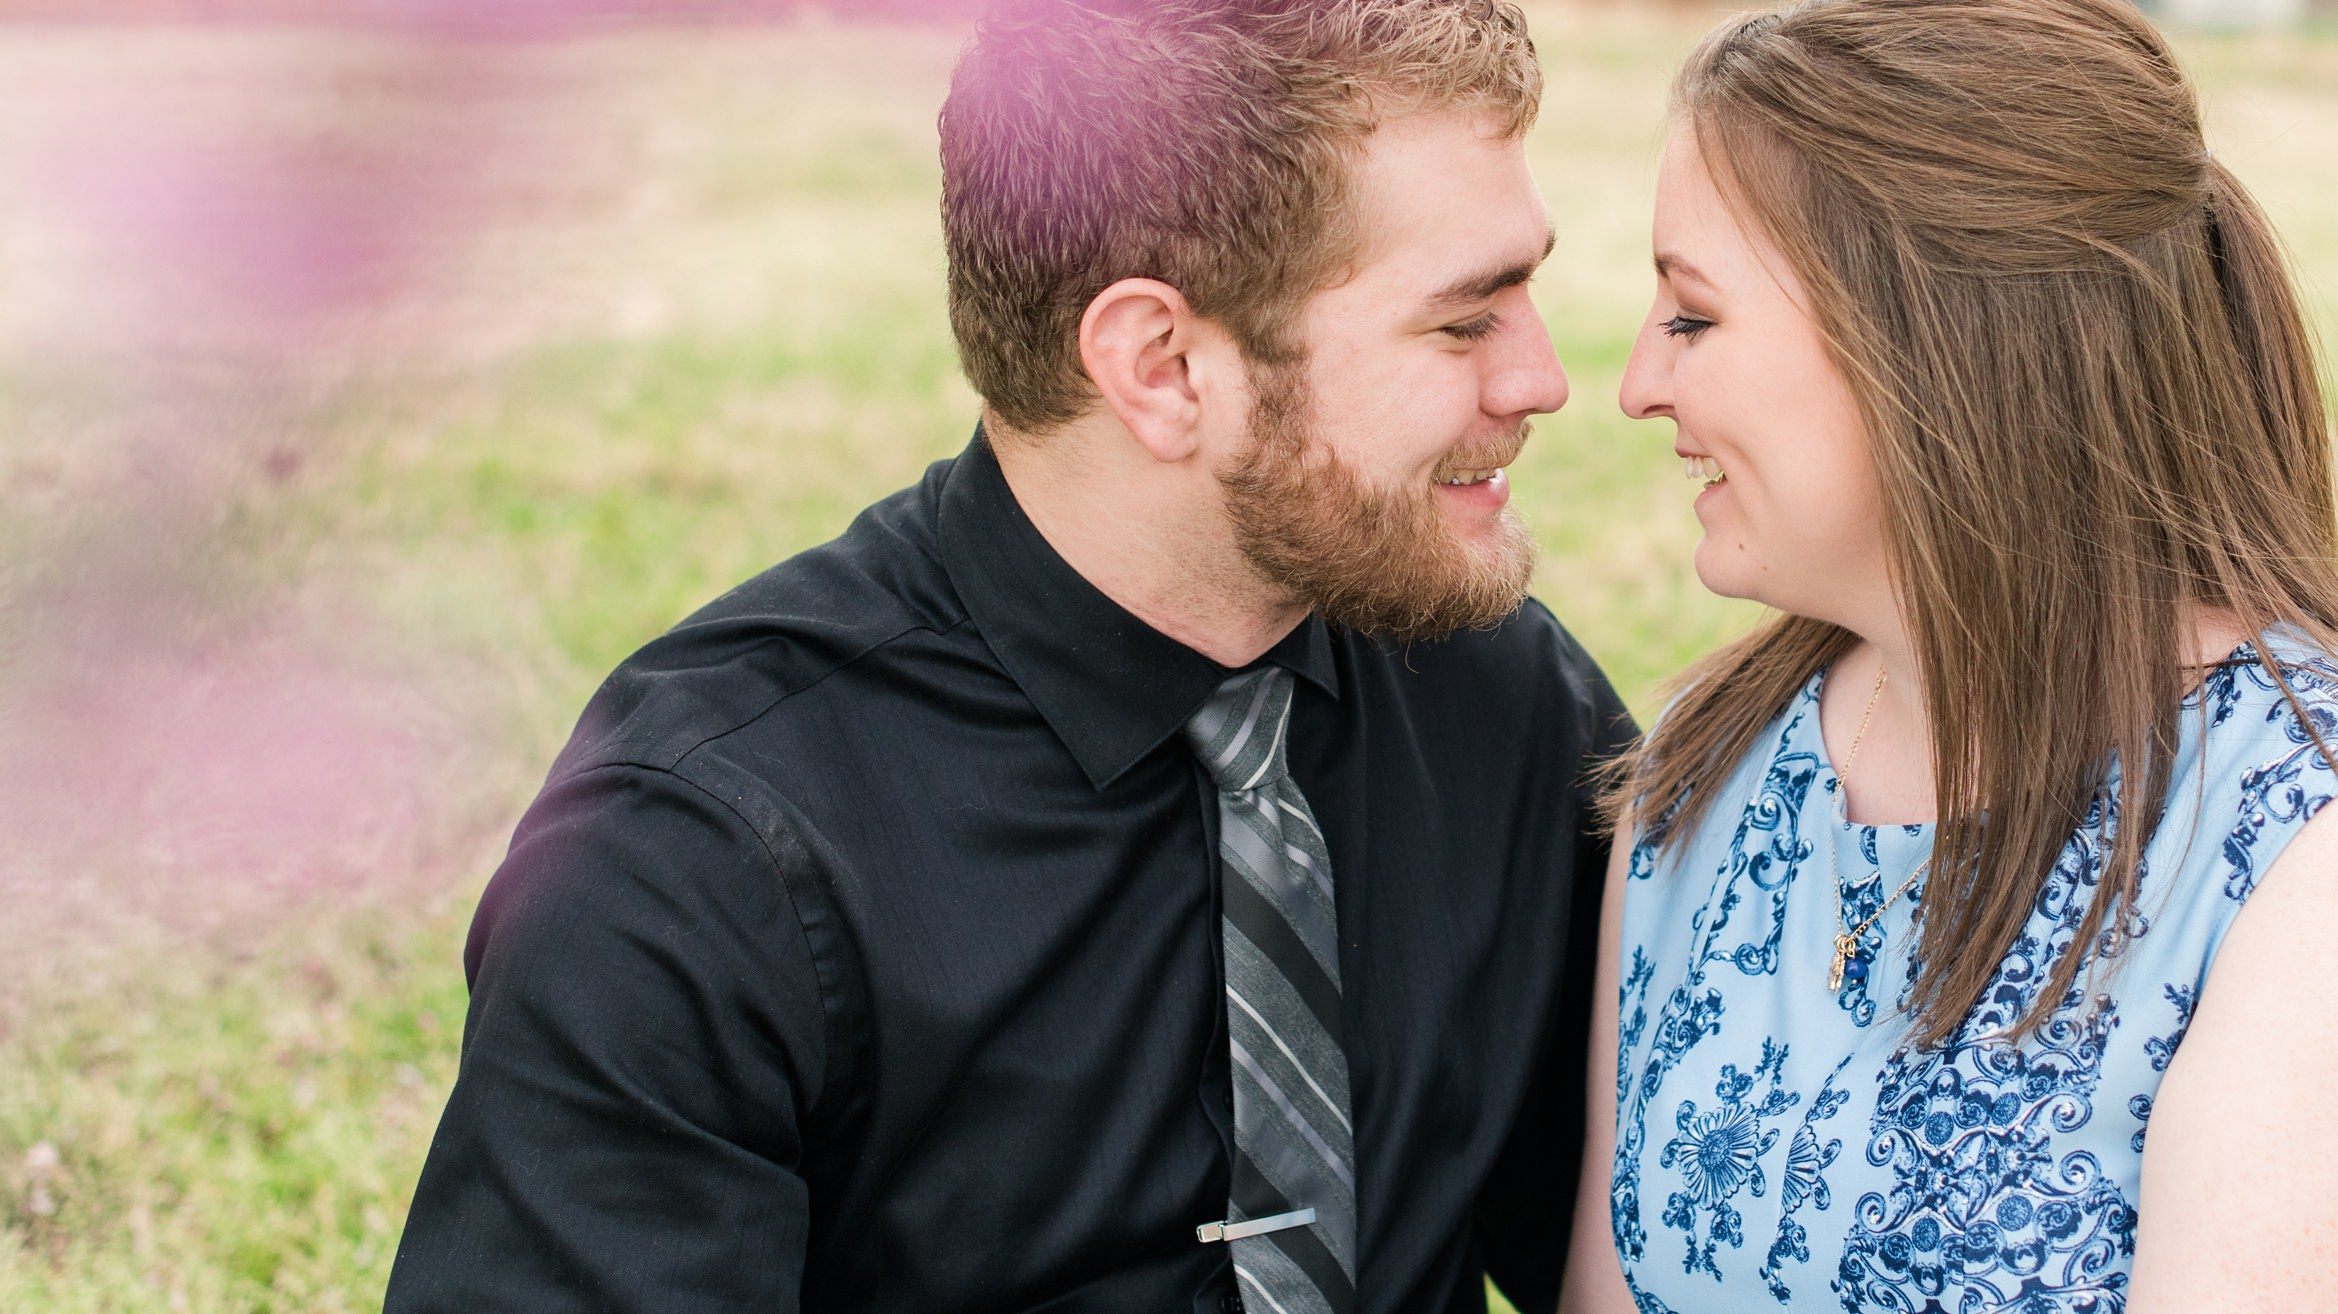 Bryant + Laura Engagement Photos in Siloam Springs, AR